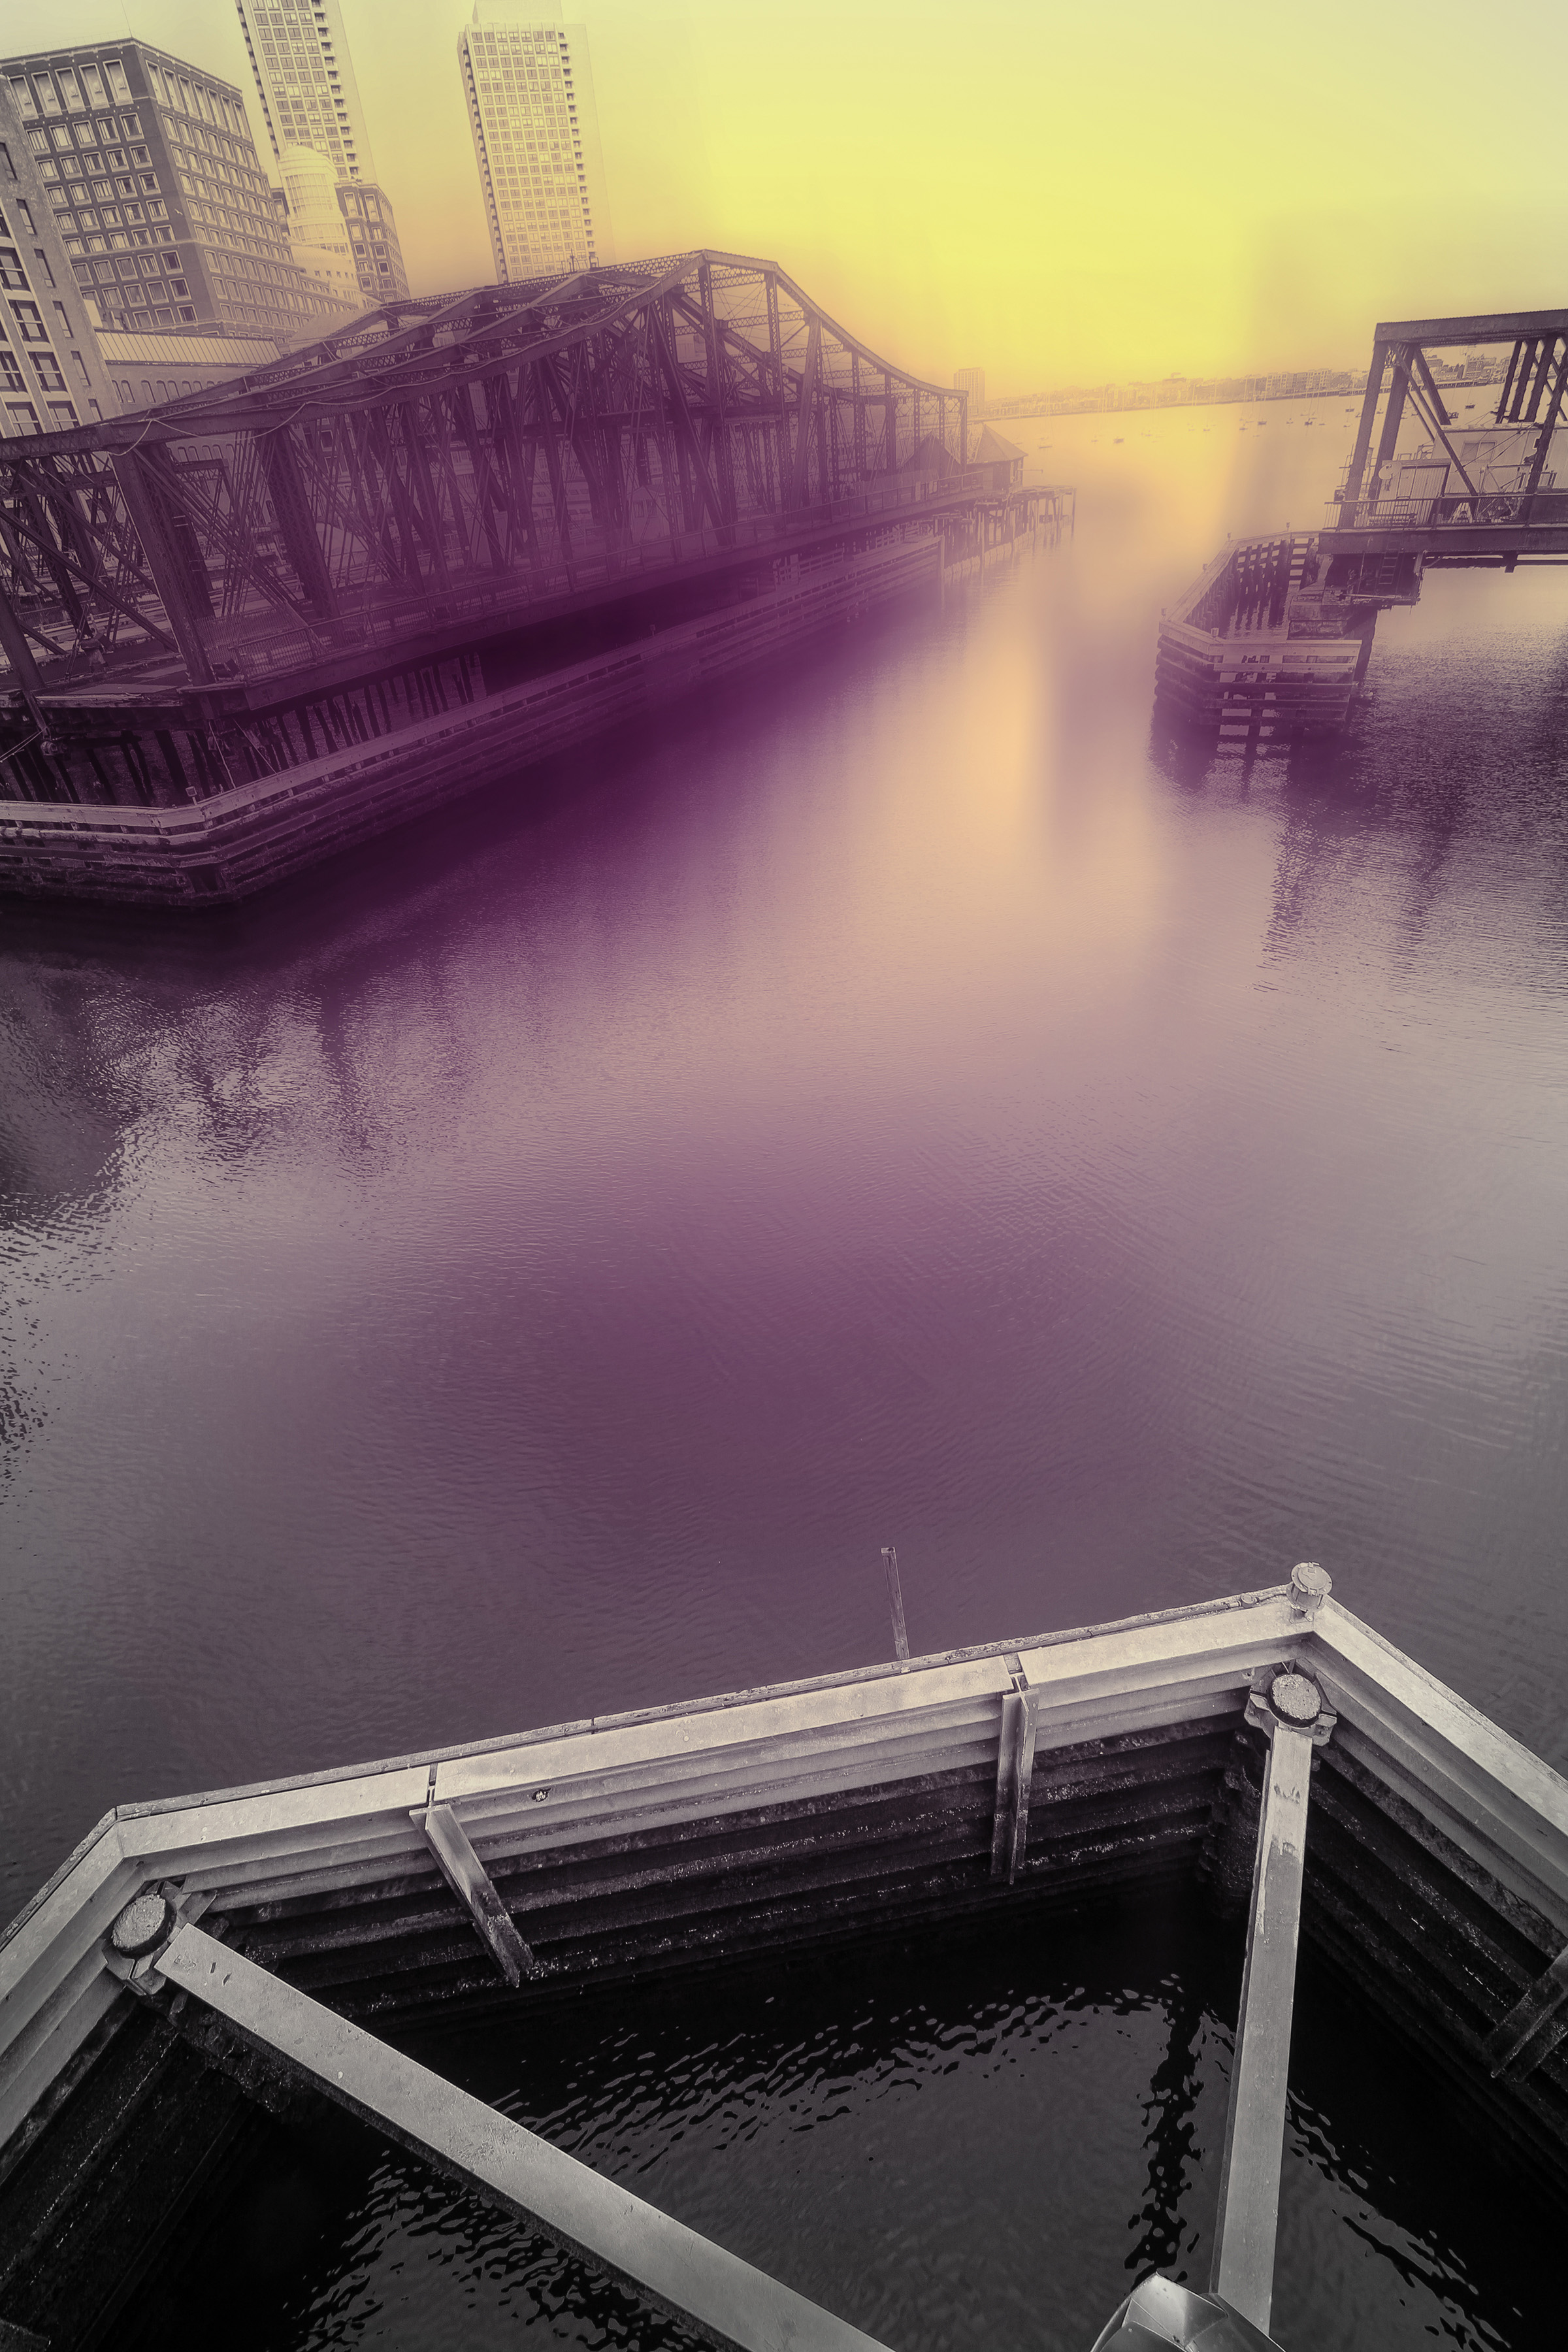 "Bridge with Cobalt Violet and Cadmium Yellow 9:44 am , digital photograph on plexiglass, 24"" x 16"", $900"